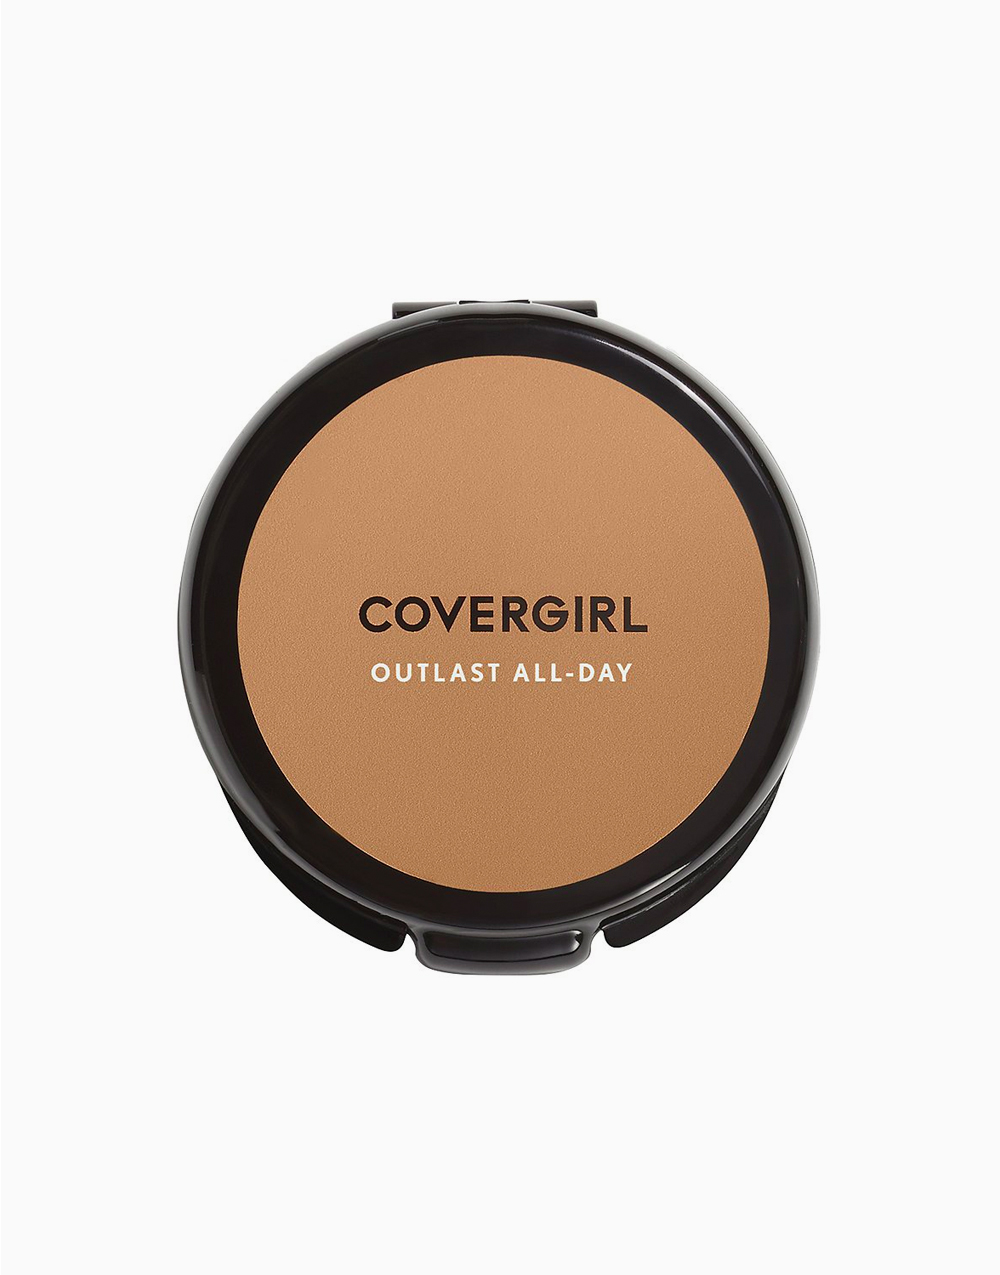 Outlast All-Day Matte Finishing Powder by CoverGirl | Medium to Deep